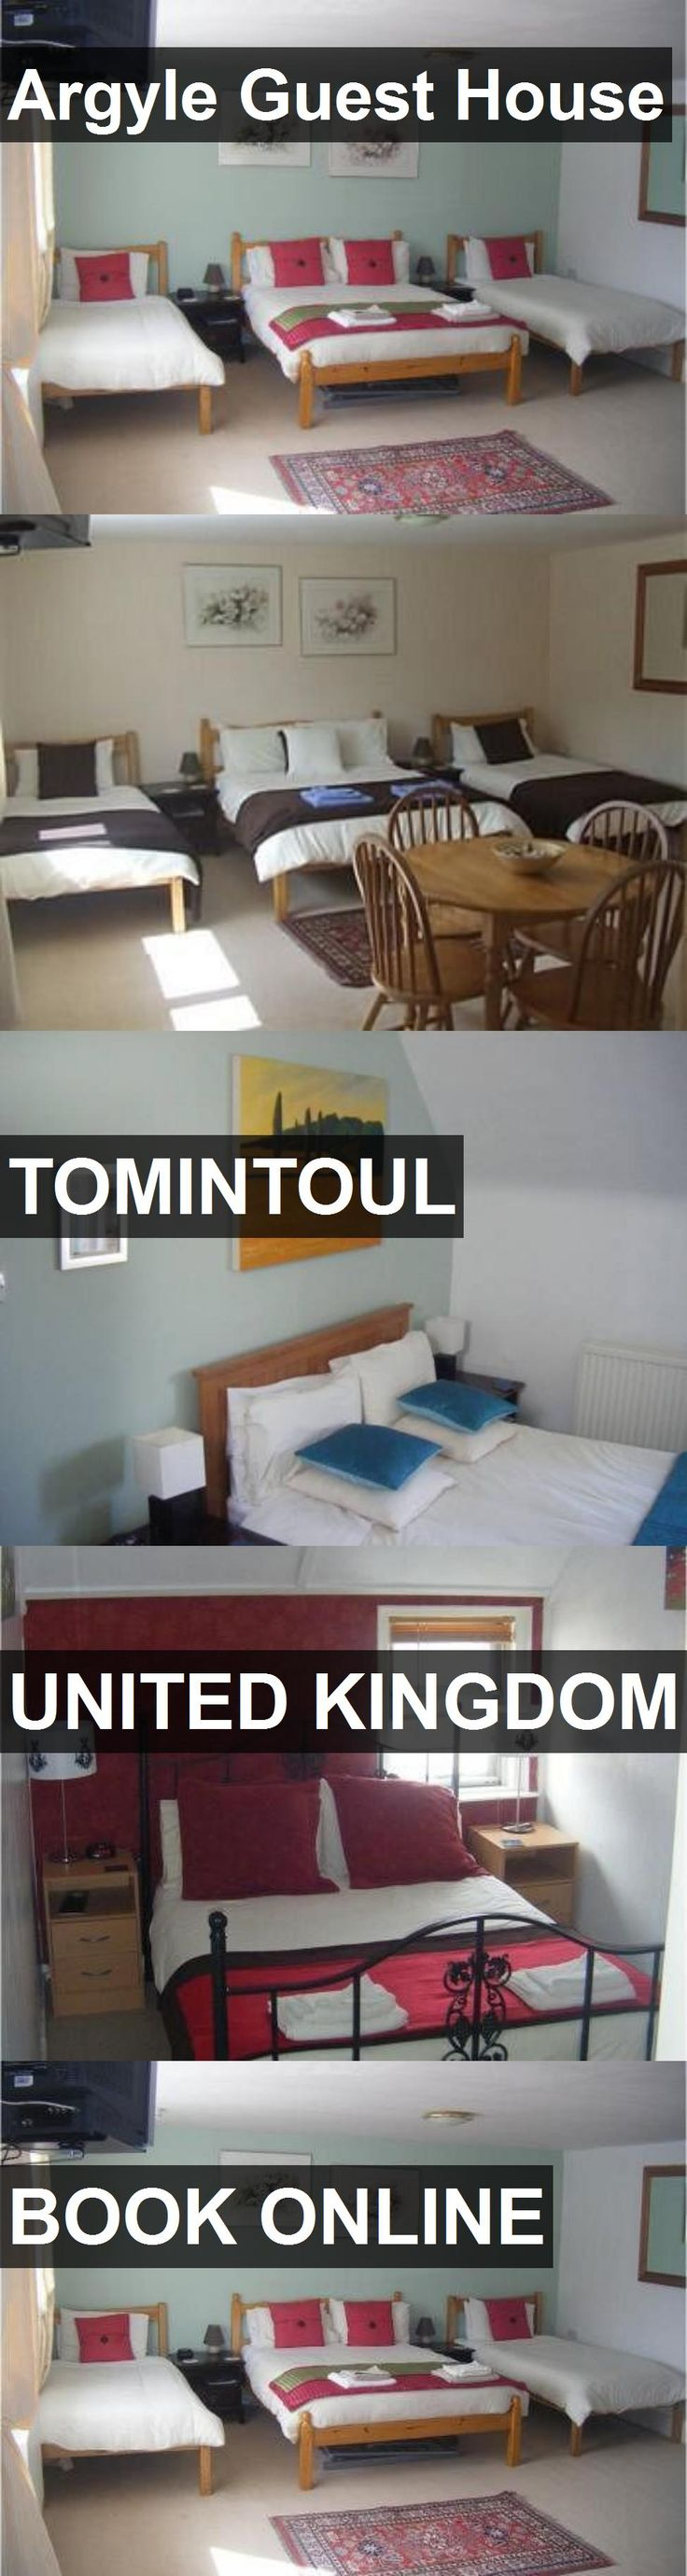 Argyle Guest House in Tomintoul, United Kingdom. For more information, photos, reviews and best prices please follow the link. #UnitedKingdom #Tomintoul #travel #vacation #guesthouse